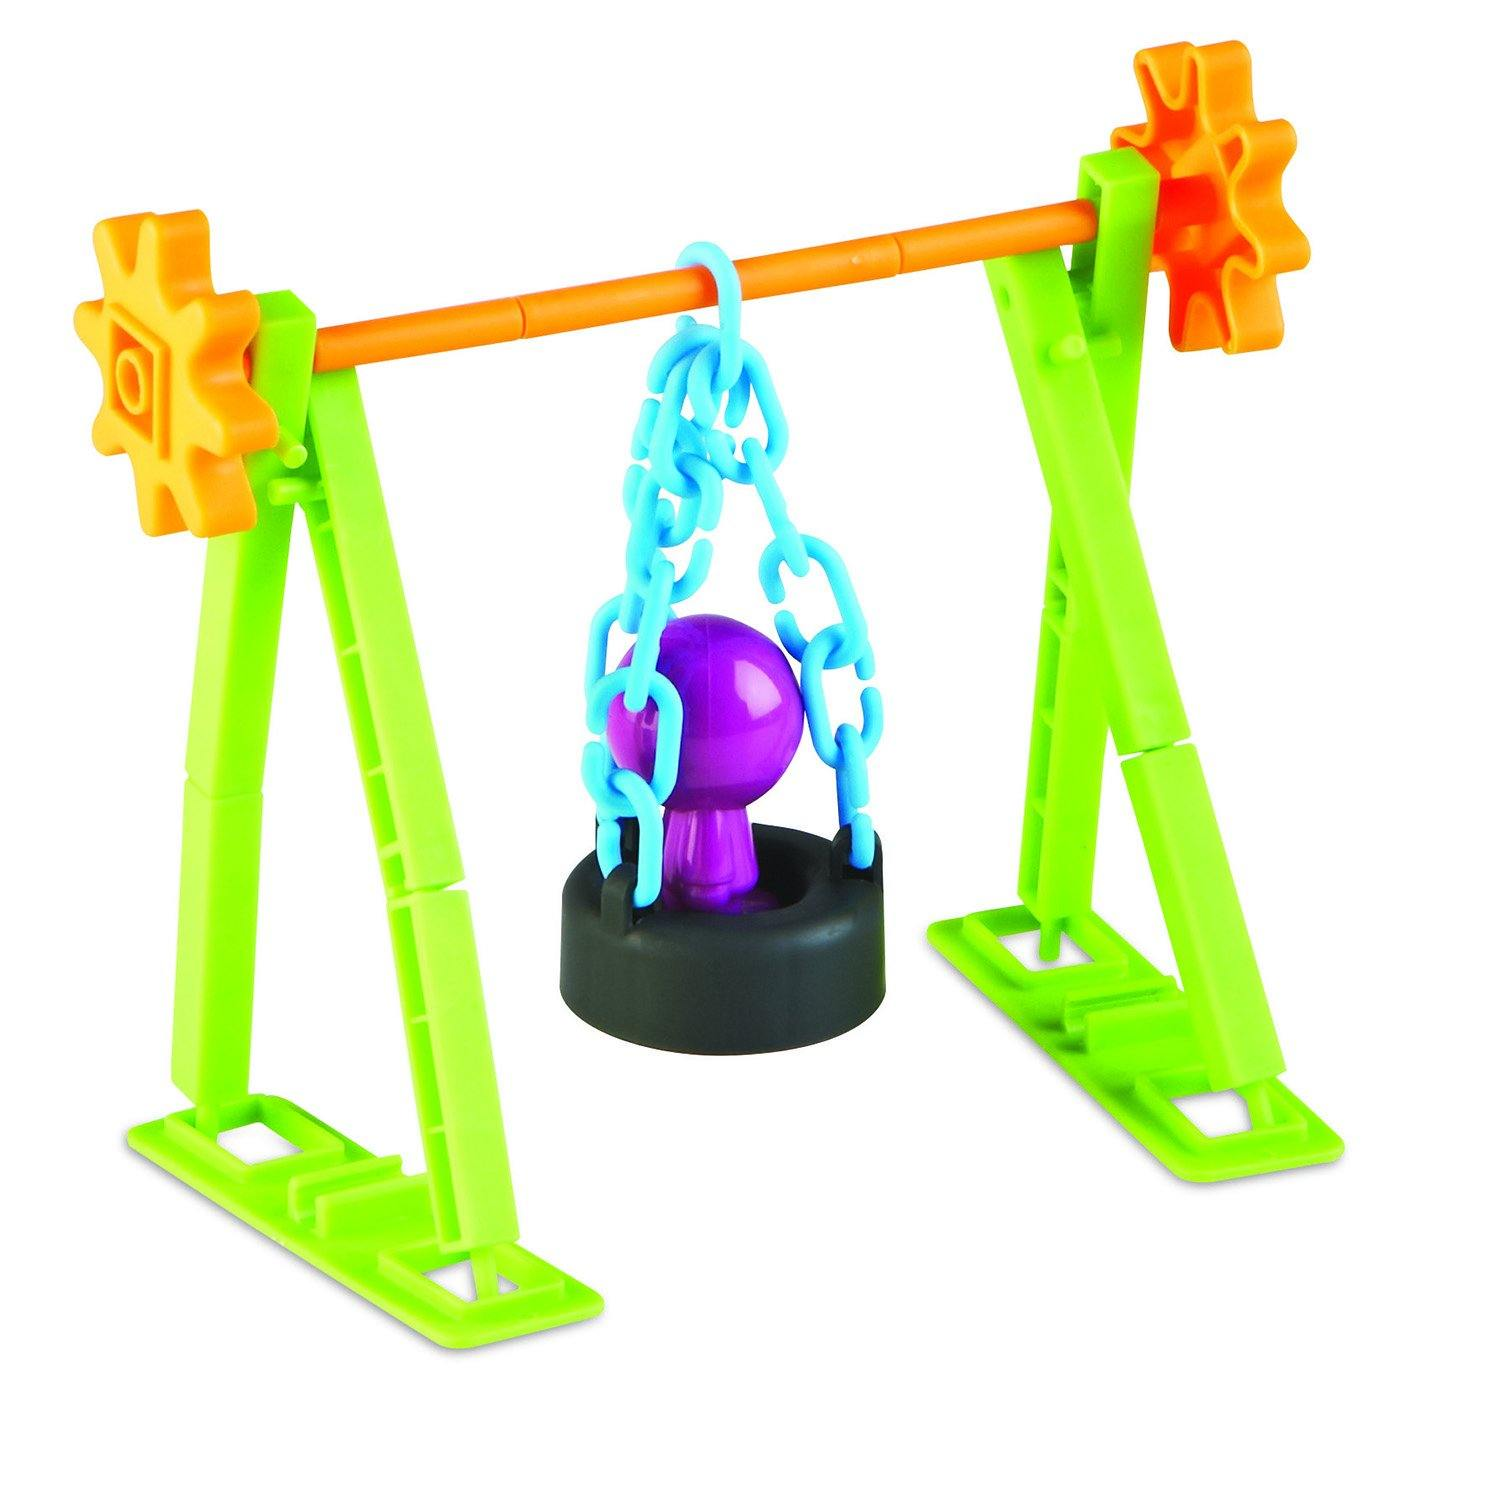 Toy swing set